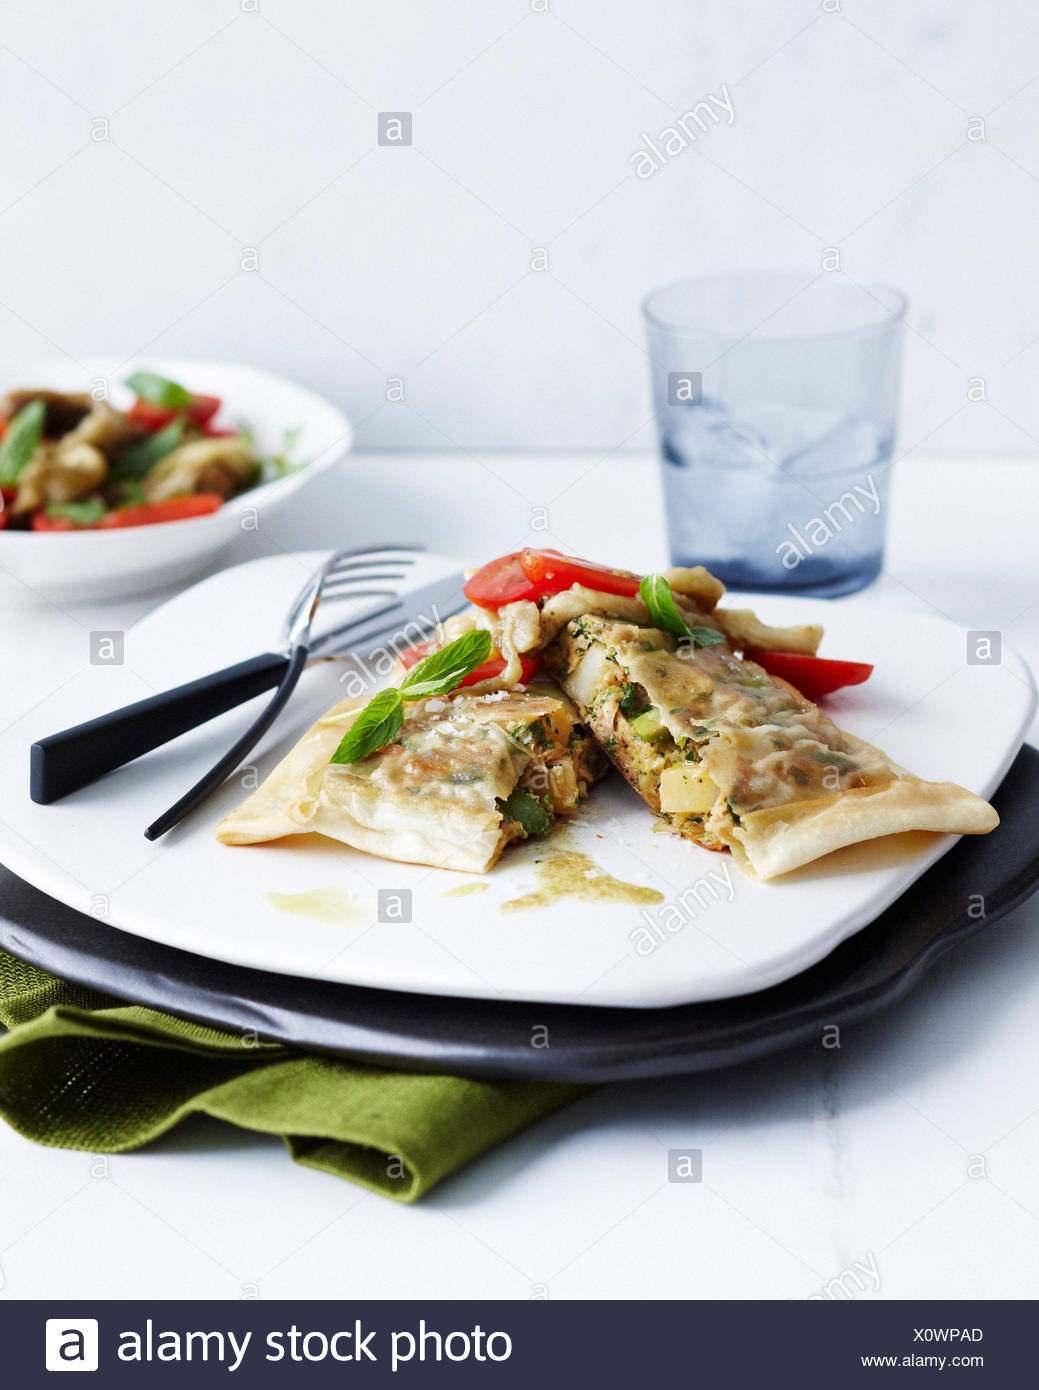 Plate with garnished tuna and egg briks and side dish - Stock Image